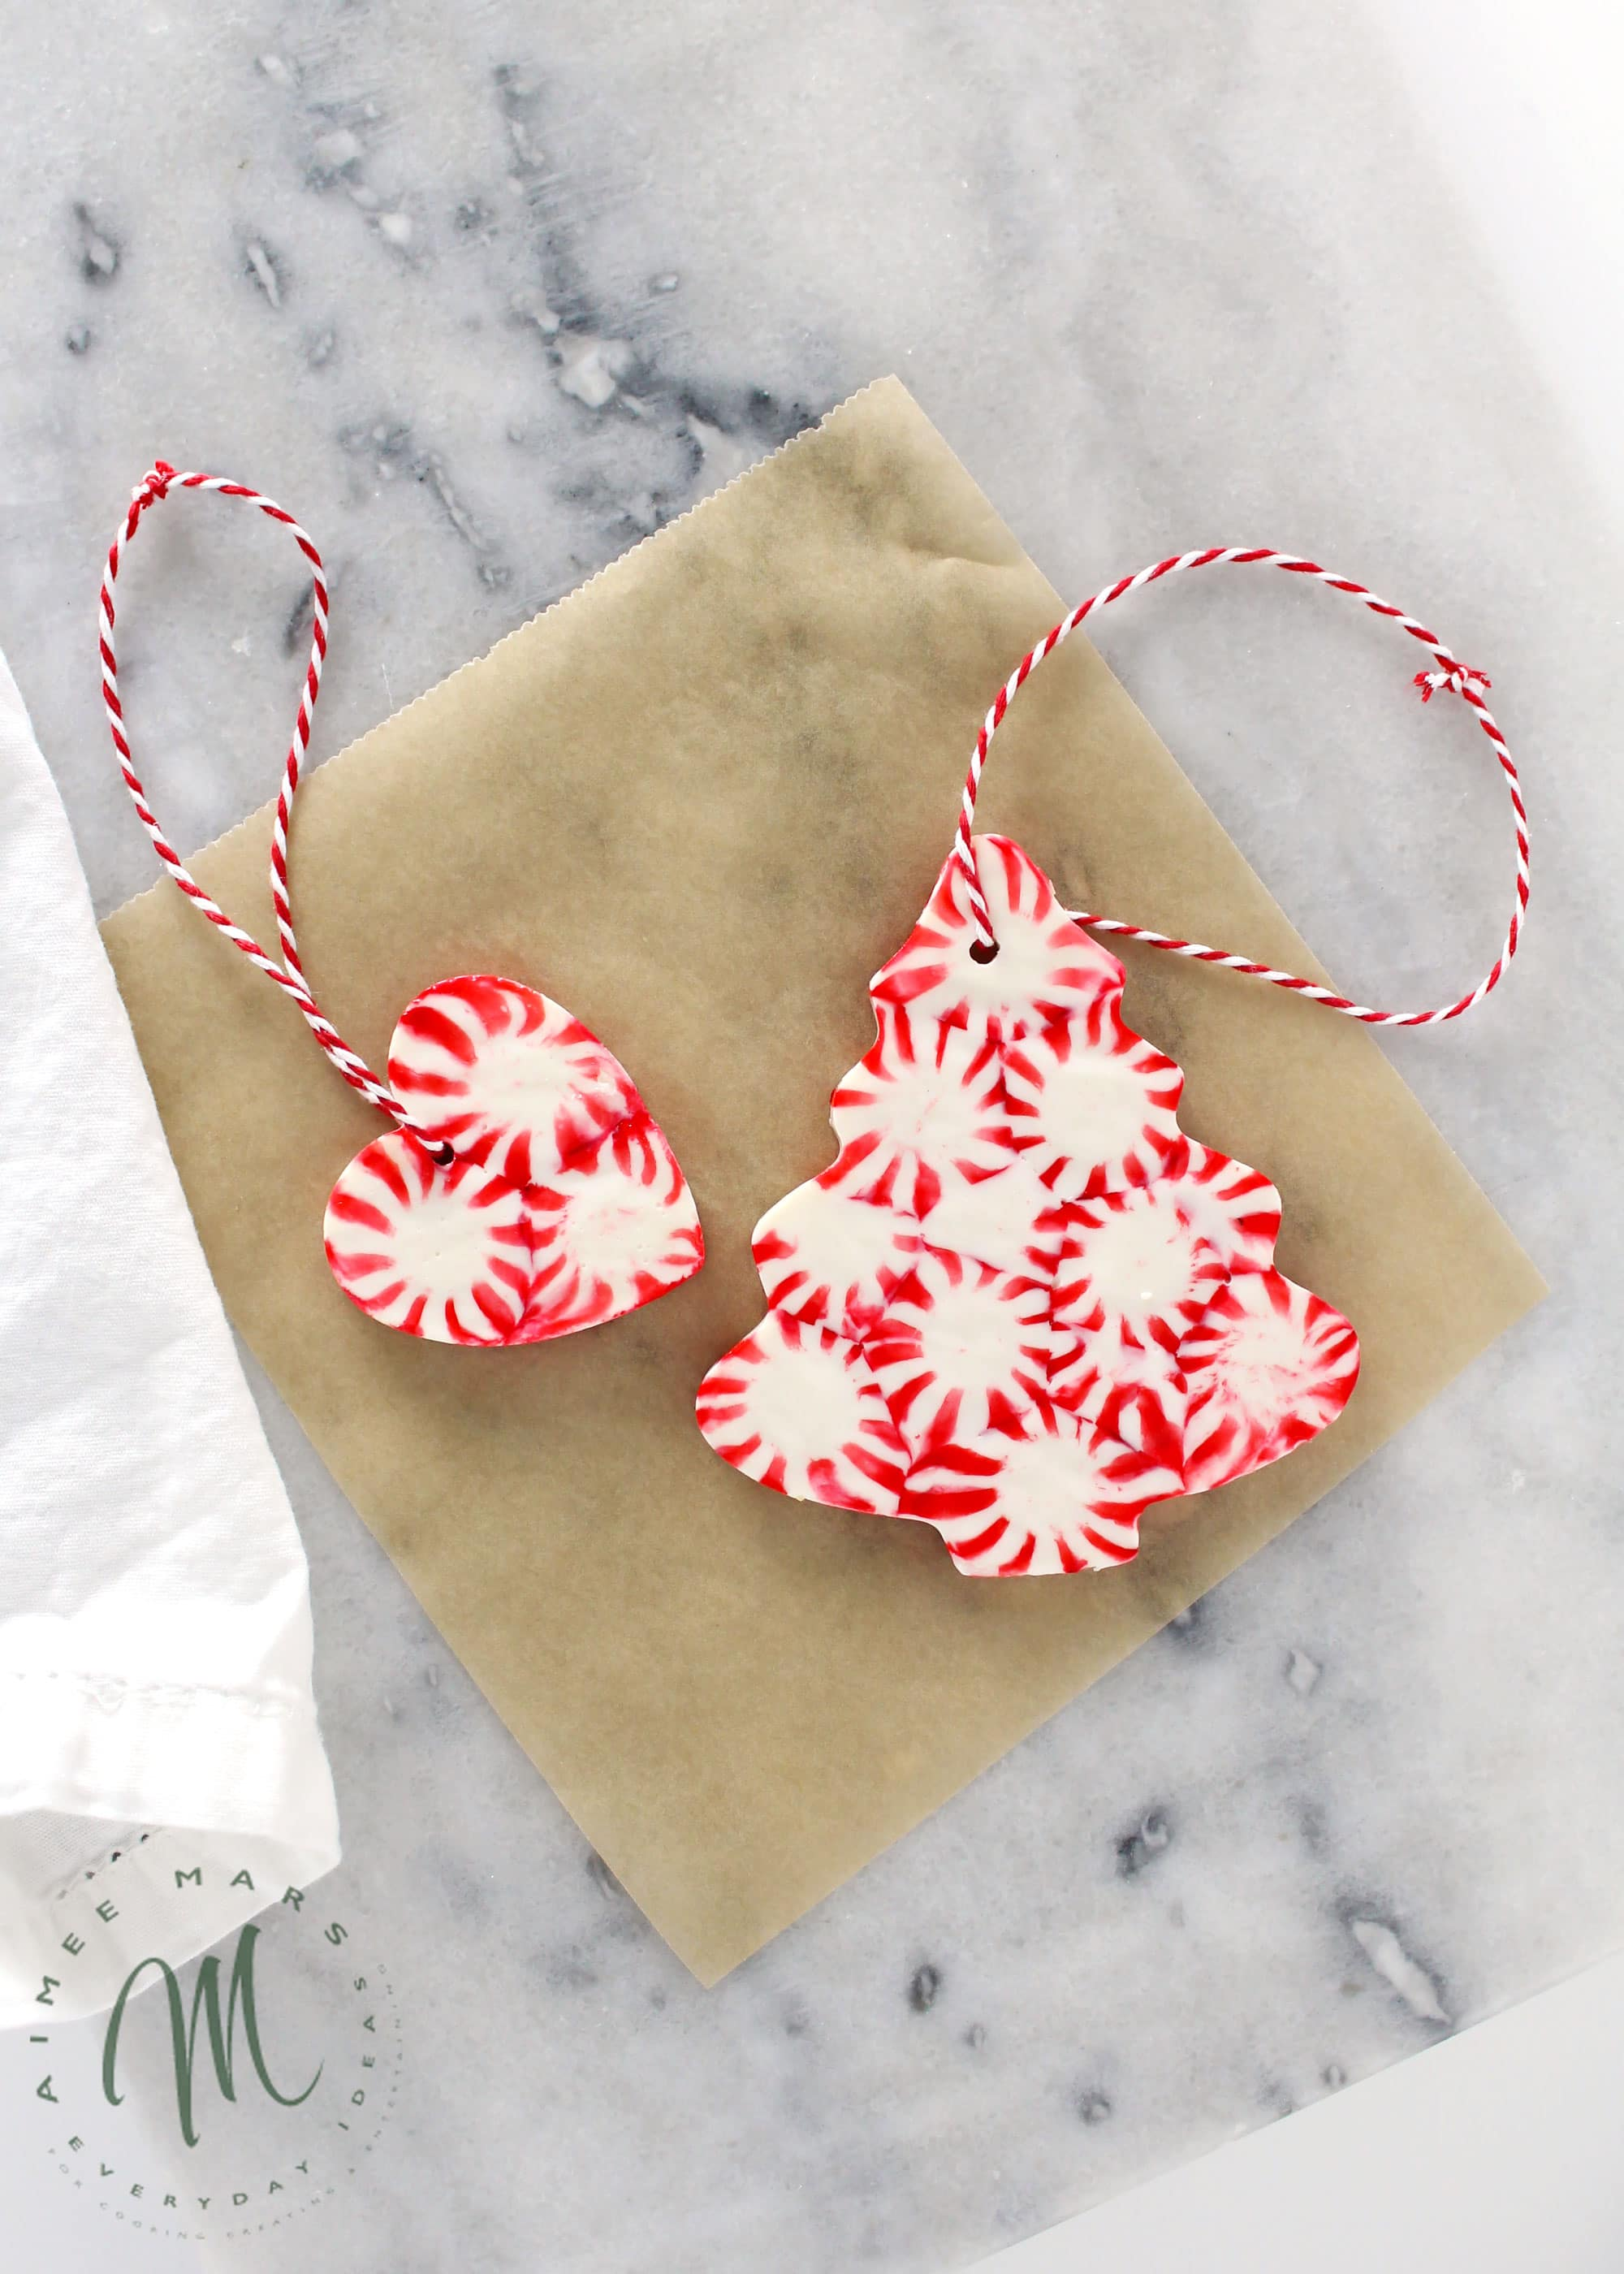 homemade peppermint Christmas ornaments tied with string